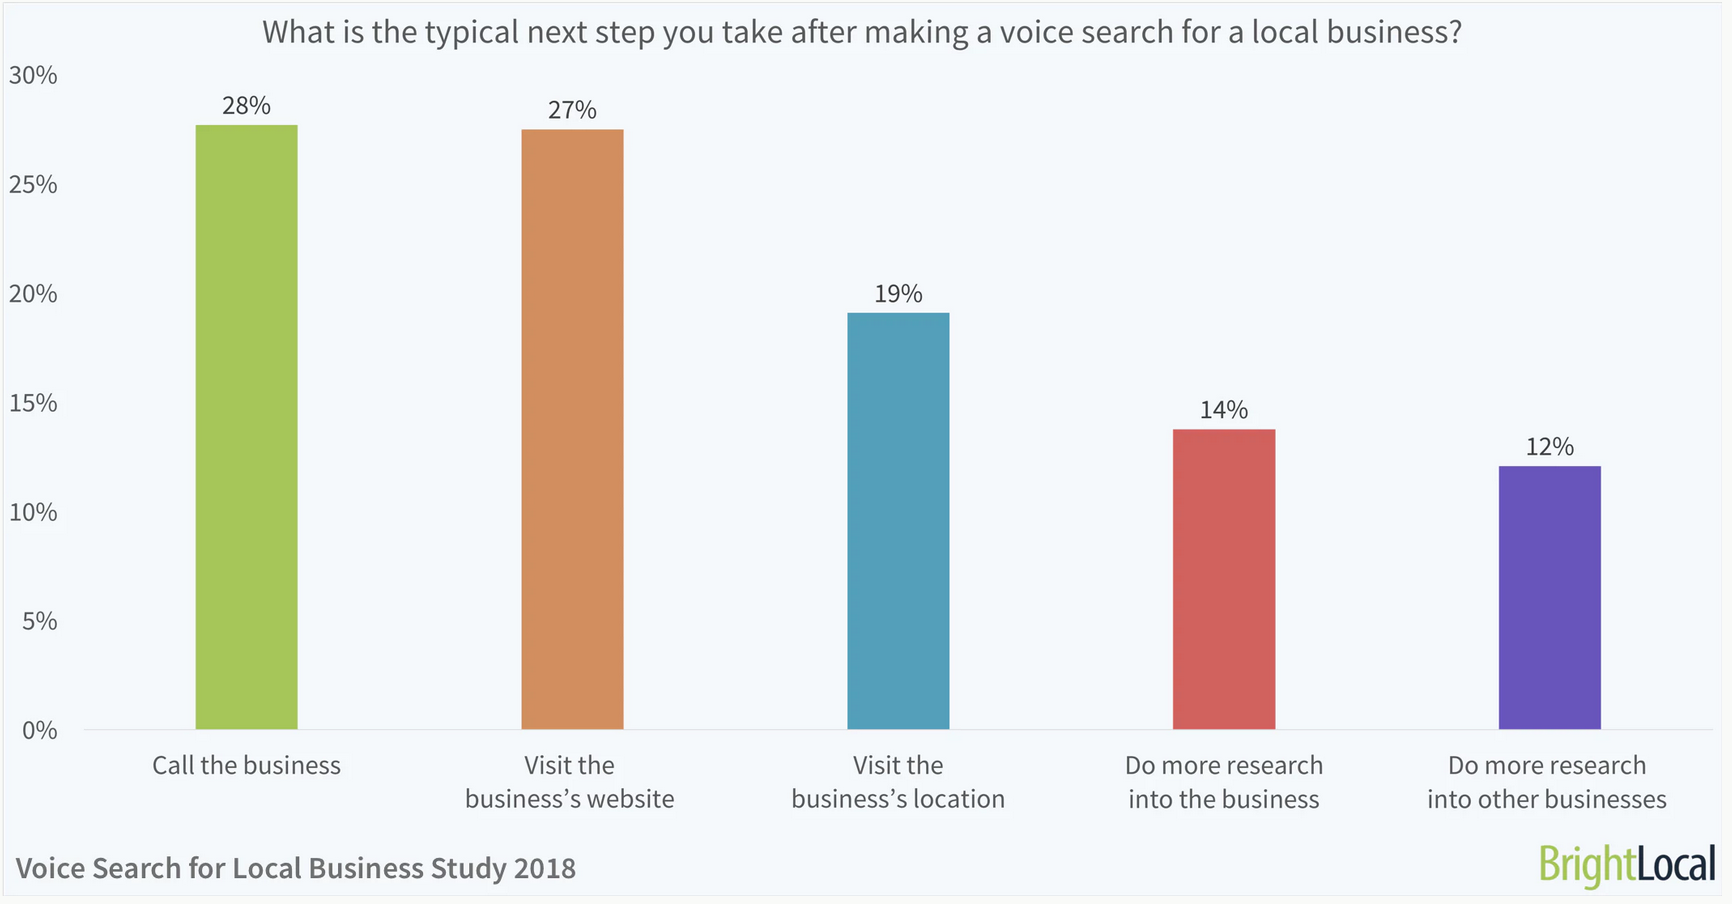 What is the typical next step you take after making a voice search for a local business?